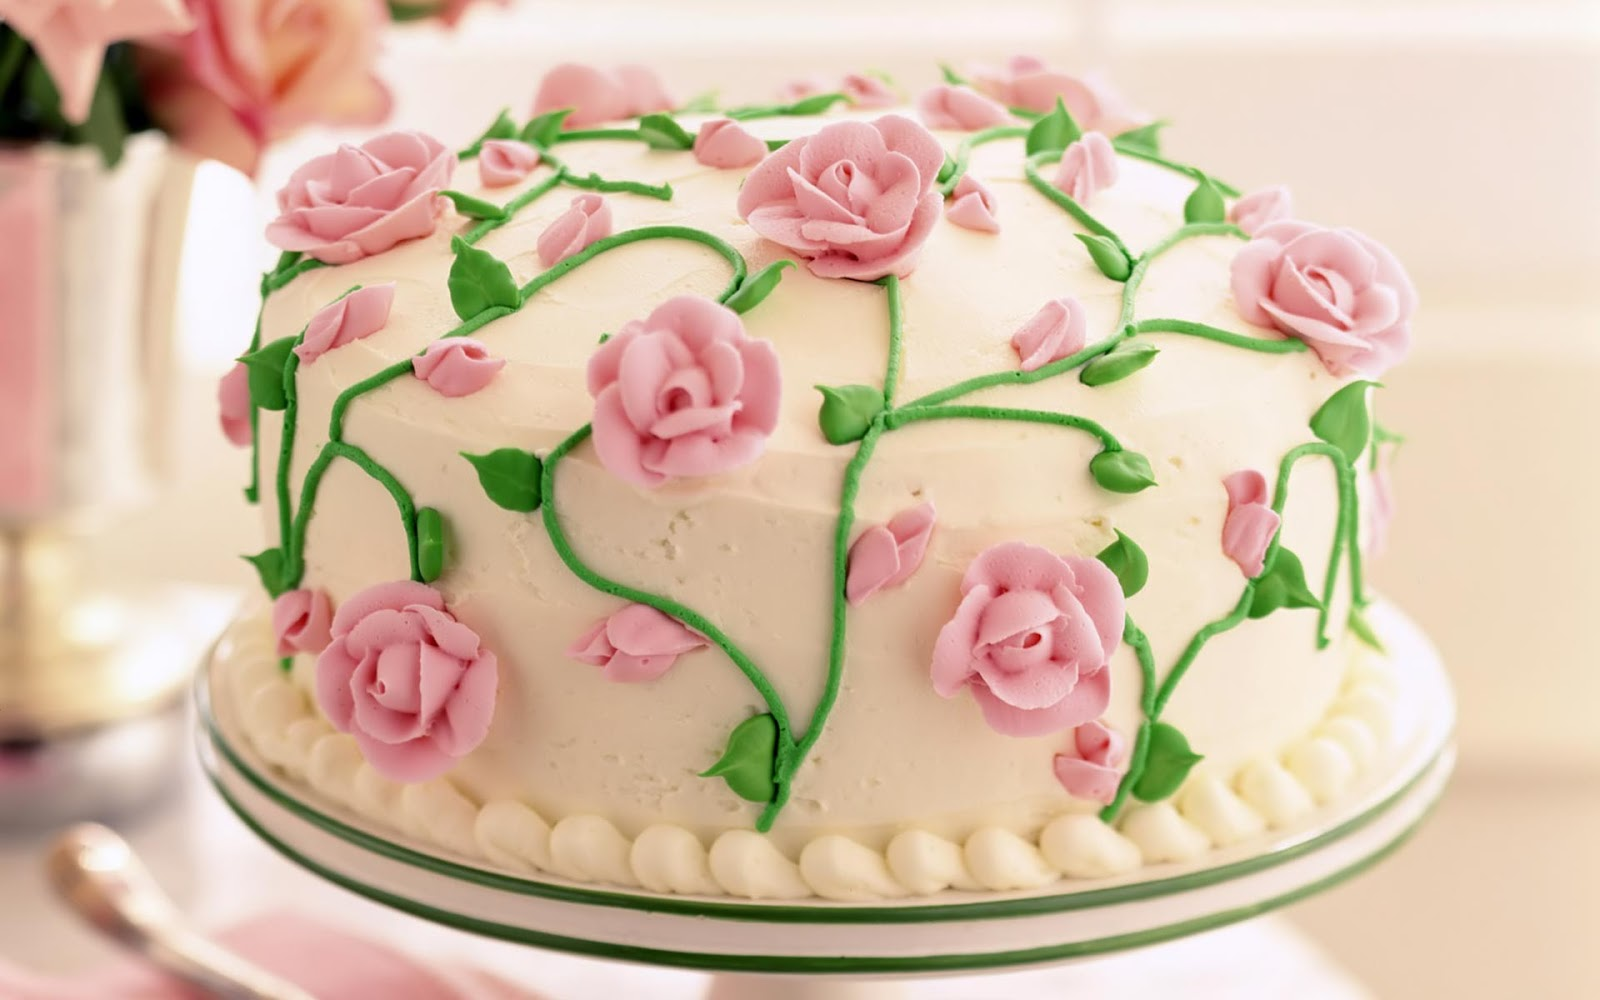 Cake Decorations Sydney The Facts On Effective Cake Decorations